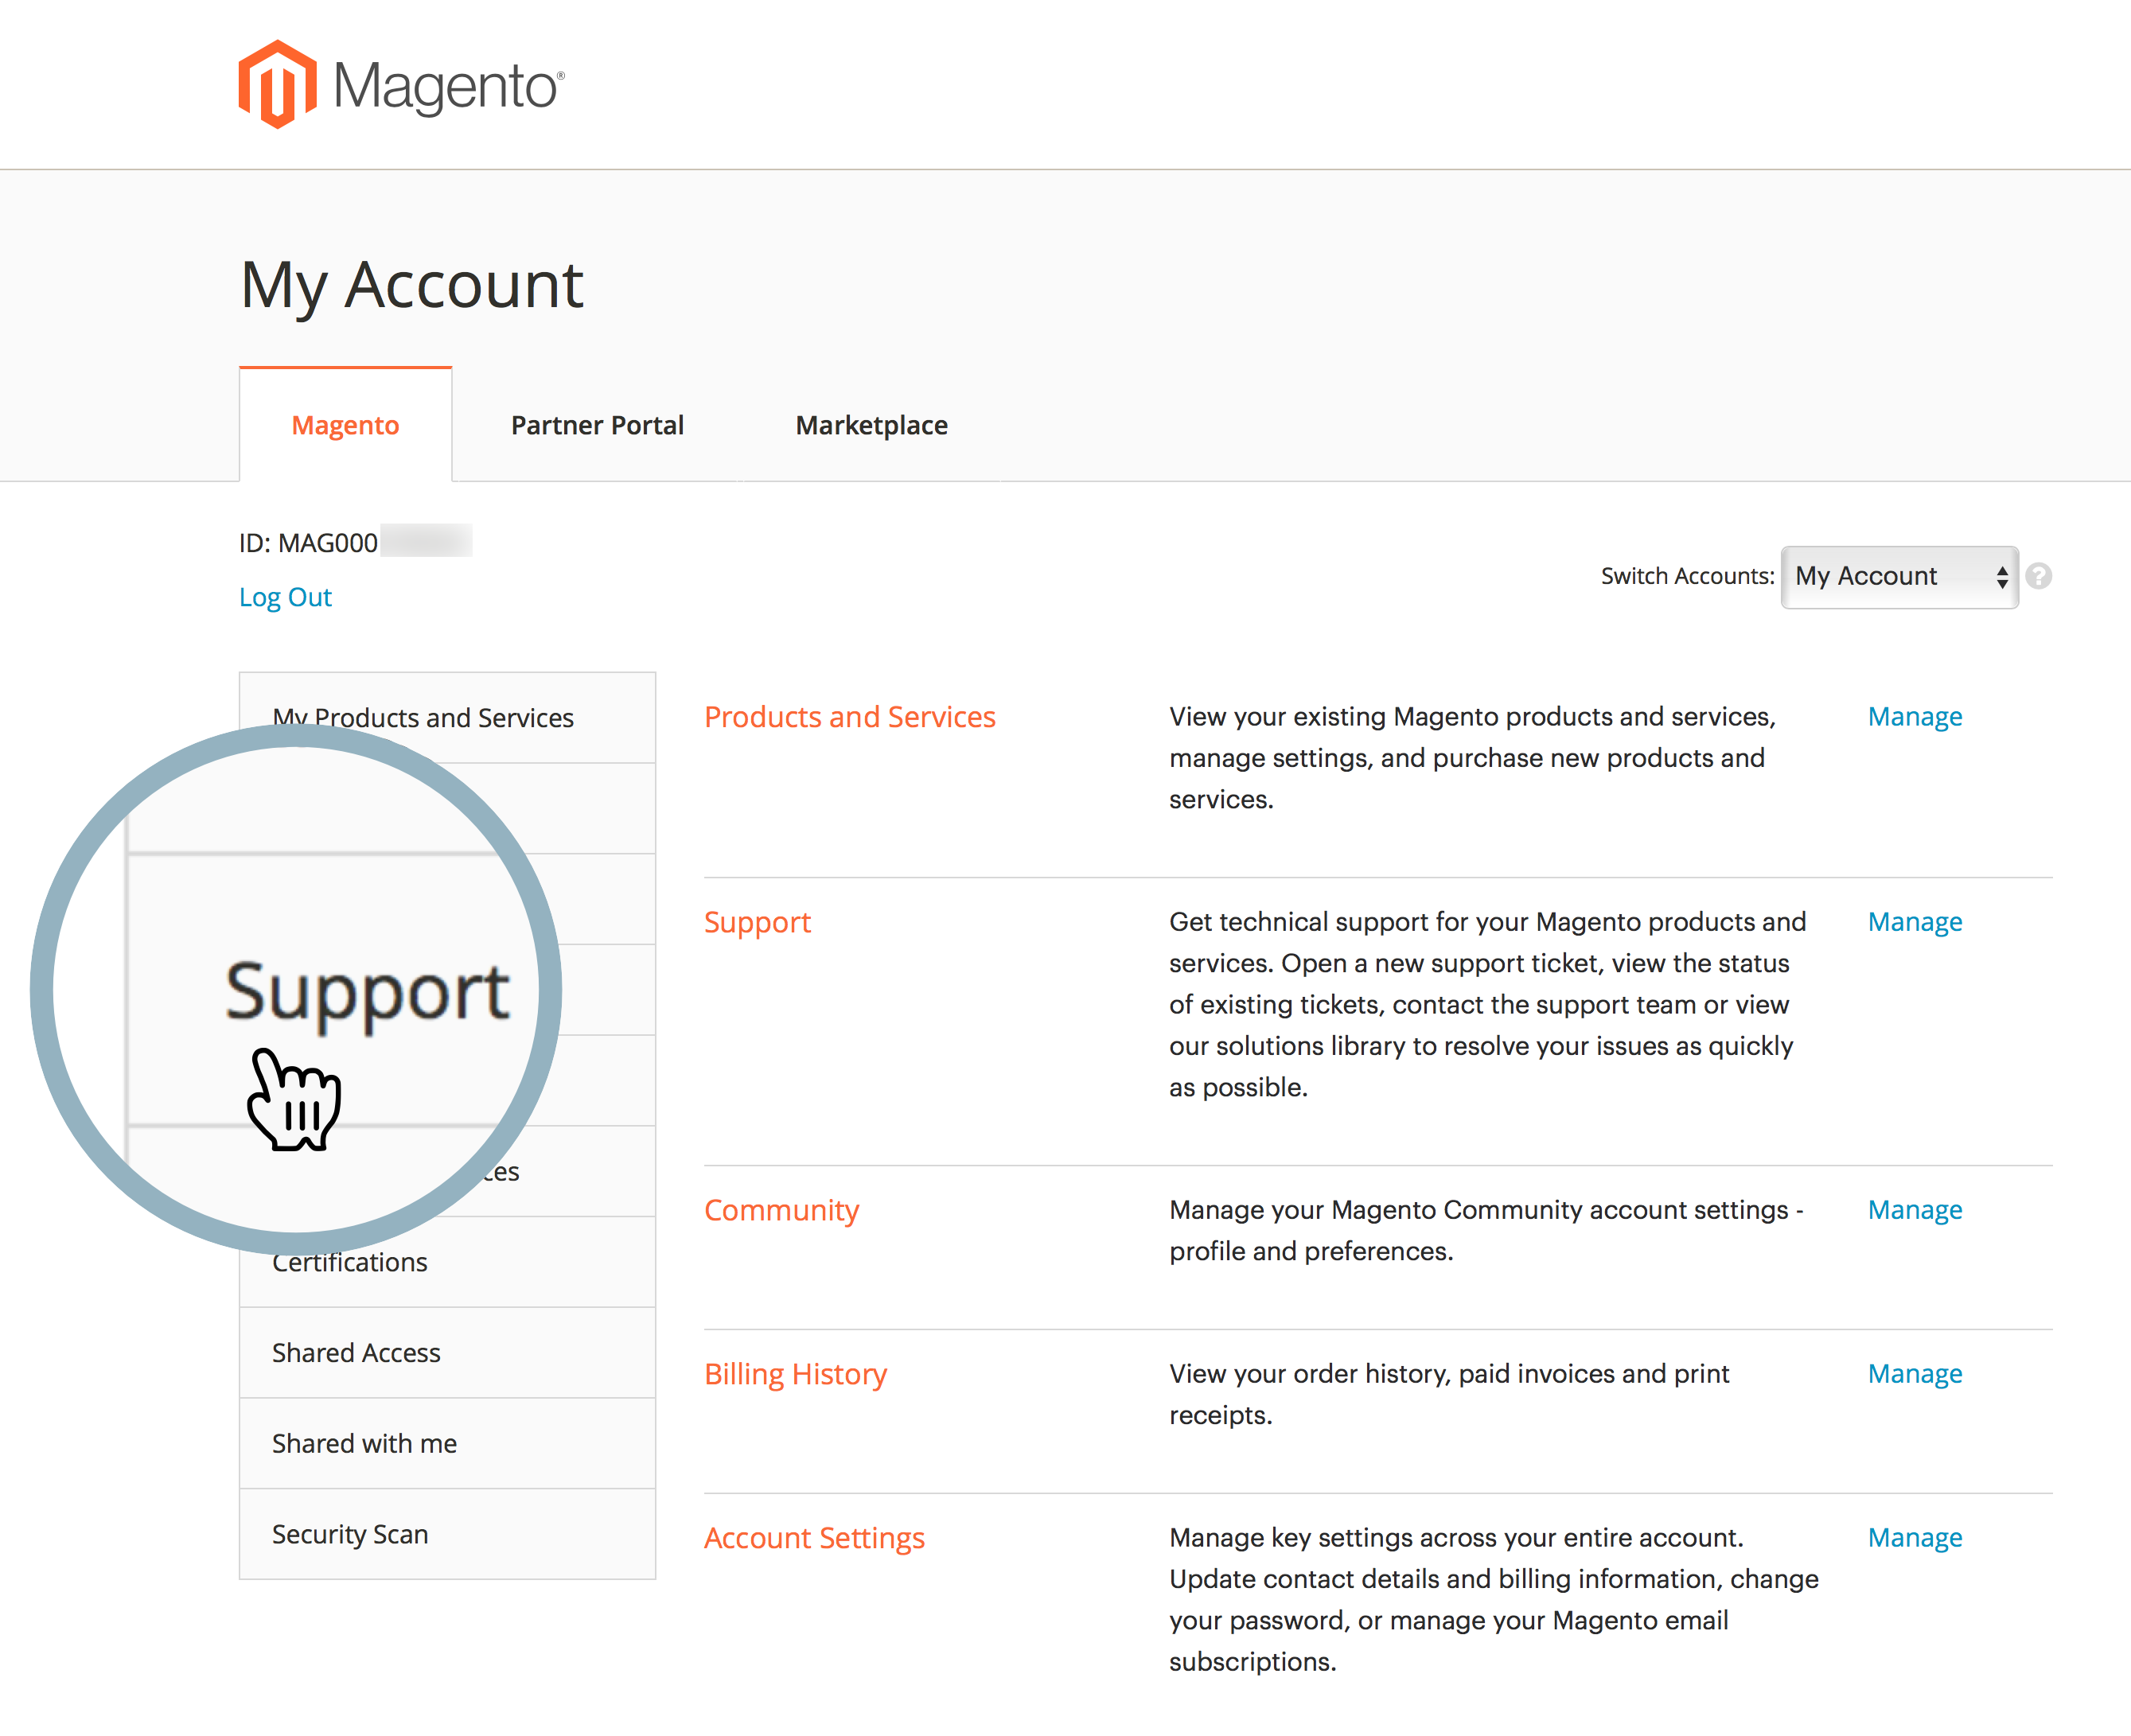 magento_account_support_tab.png